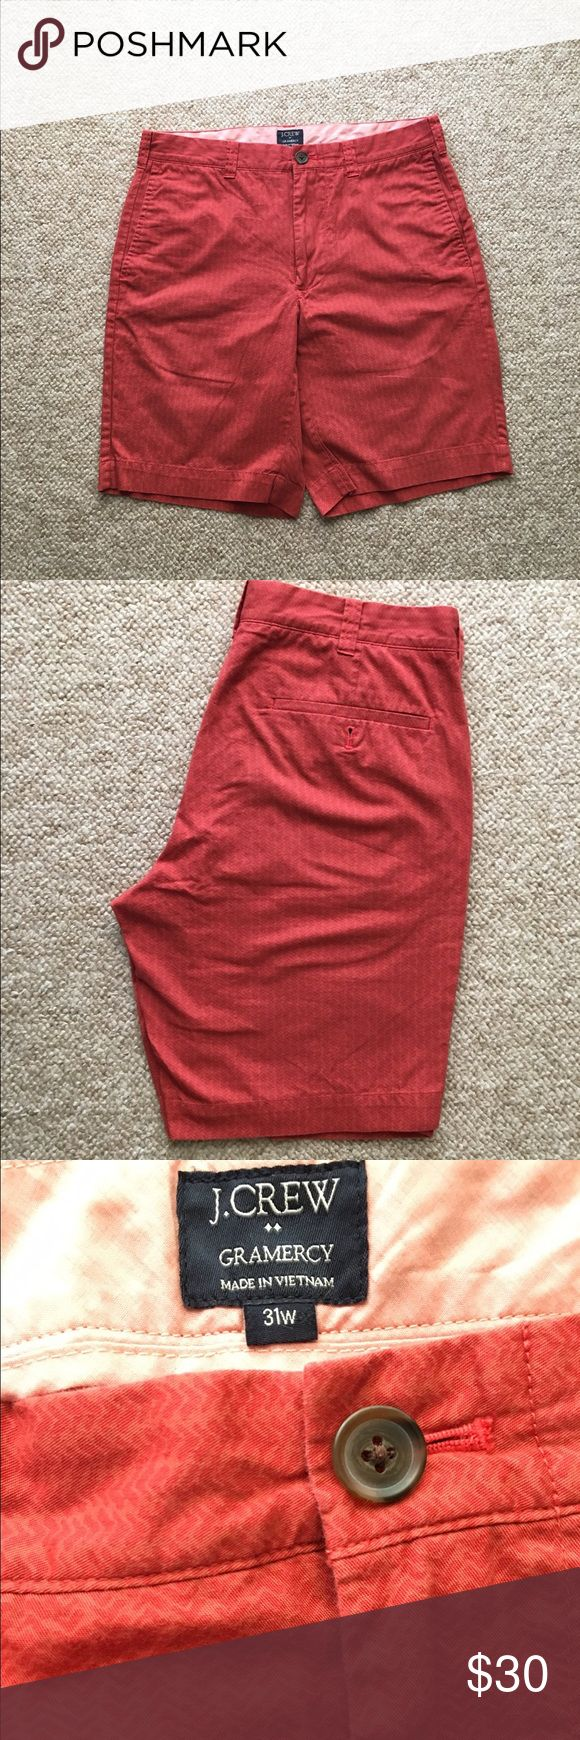 """J. Crew 9"""" Gramercy men's red shorts Men's J. Crew 9"""" inseam shorts. Red herringbone type style. Like new condition. Worn twice last summer, but were outgrown. Size 31 waist. Great for college guys as it's almost a salmon color that is very popular. Pair with a white polo or button down and sperry's for a preppy frat look. 4th photo is of the same style on a model on the j. Crew website, the red shorts are the ones for sale. Make me an offer! J. Crew Shorts Flat Front"""